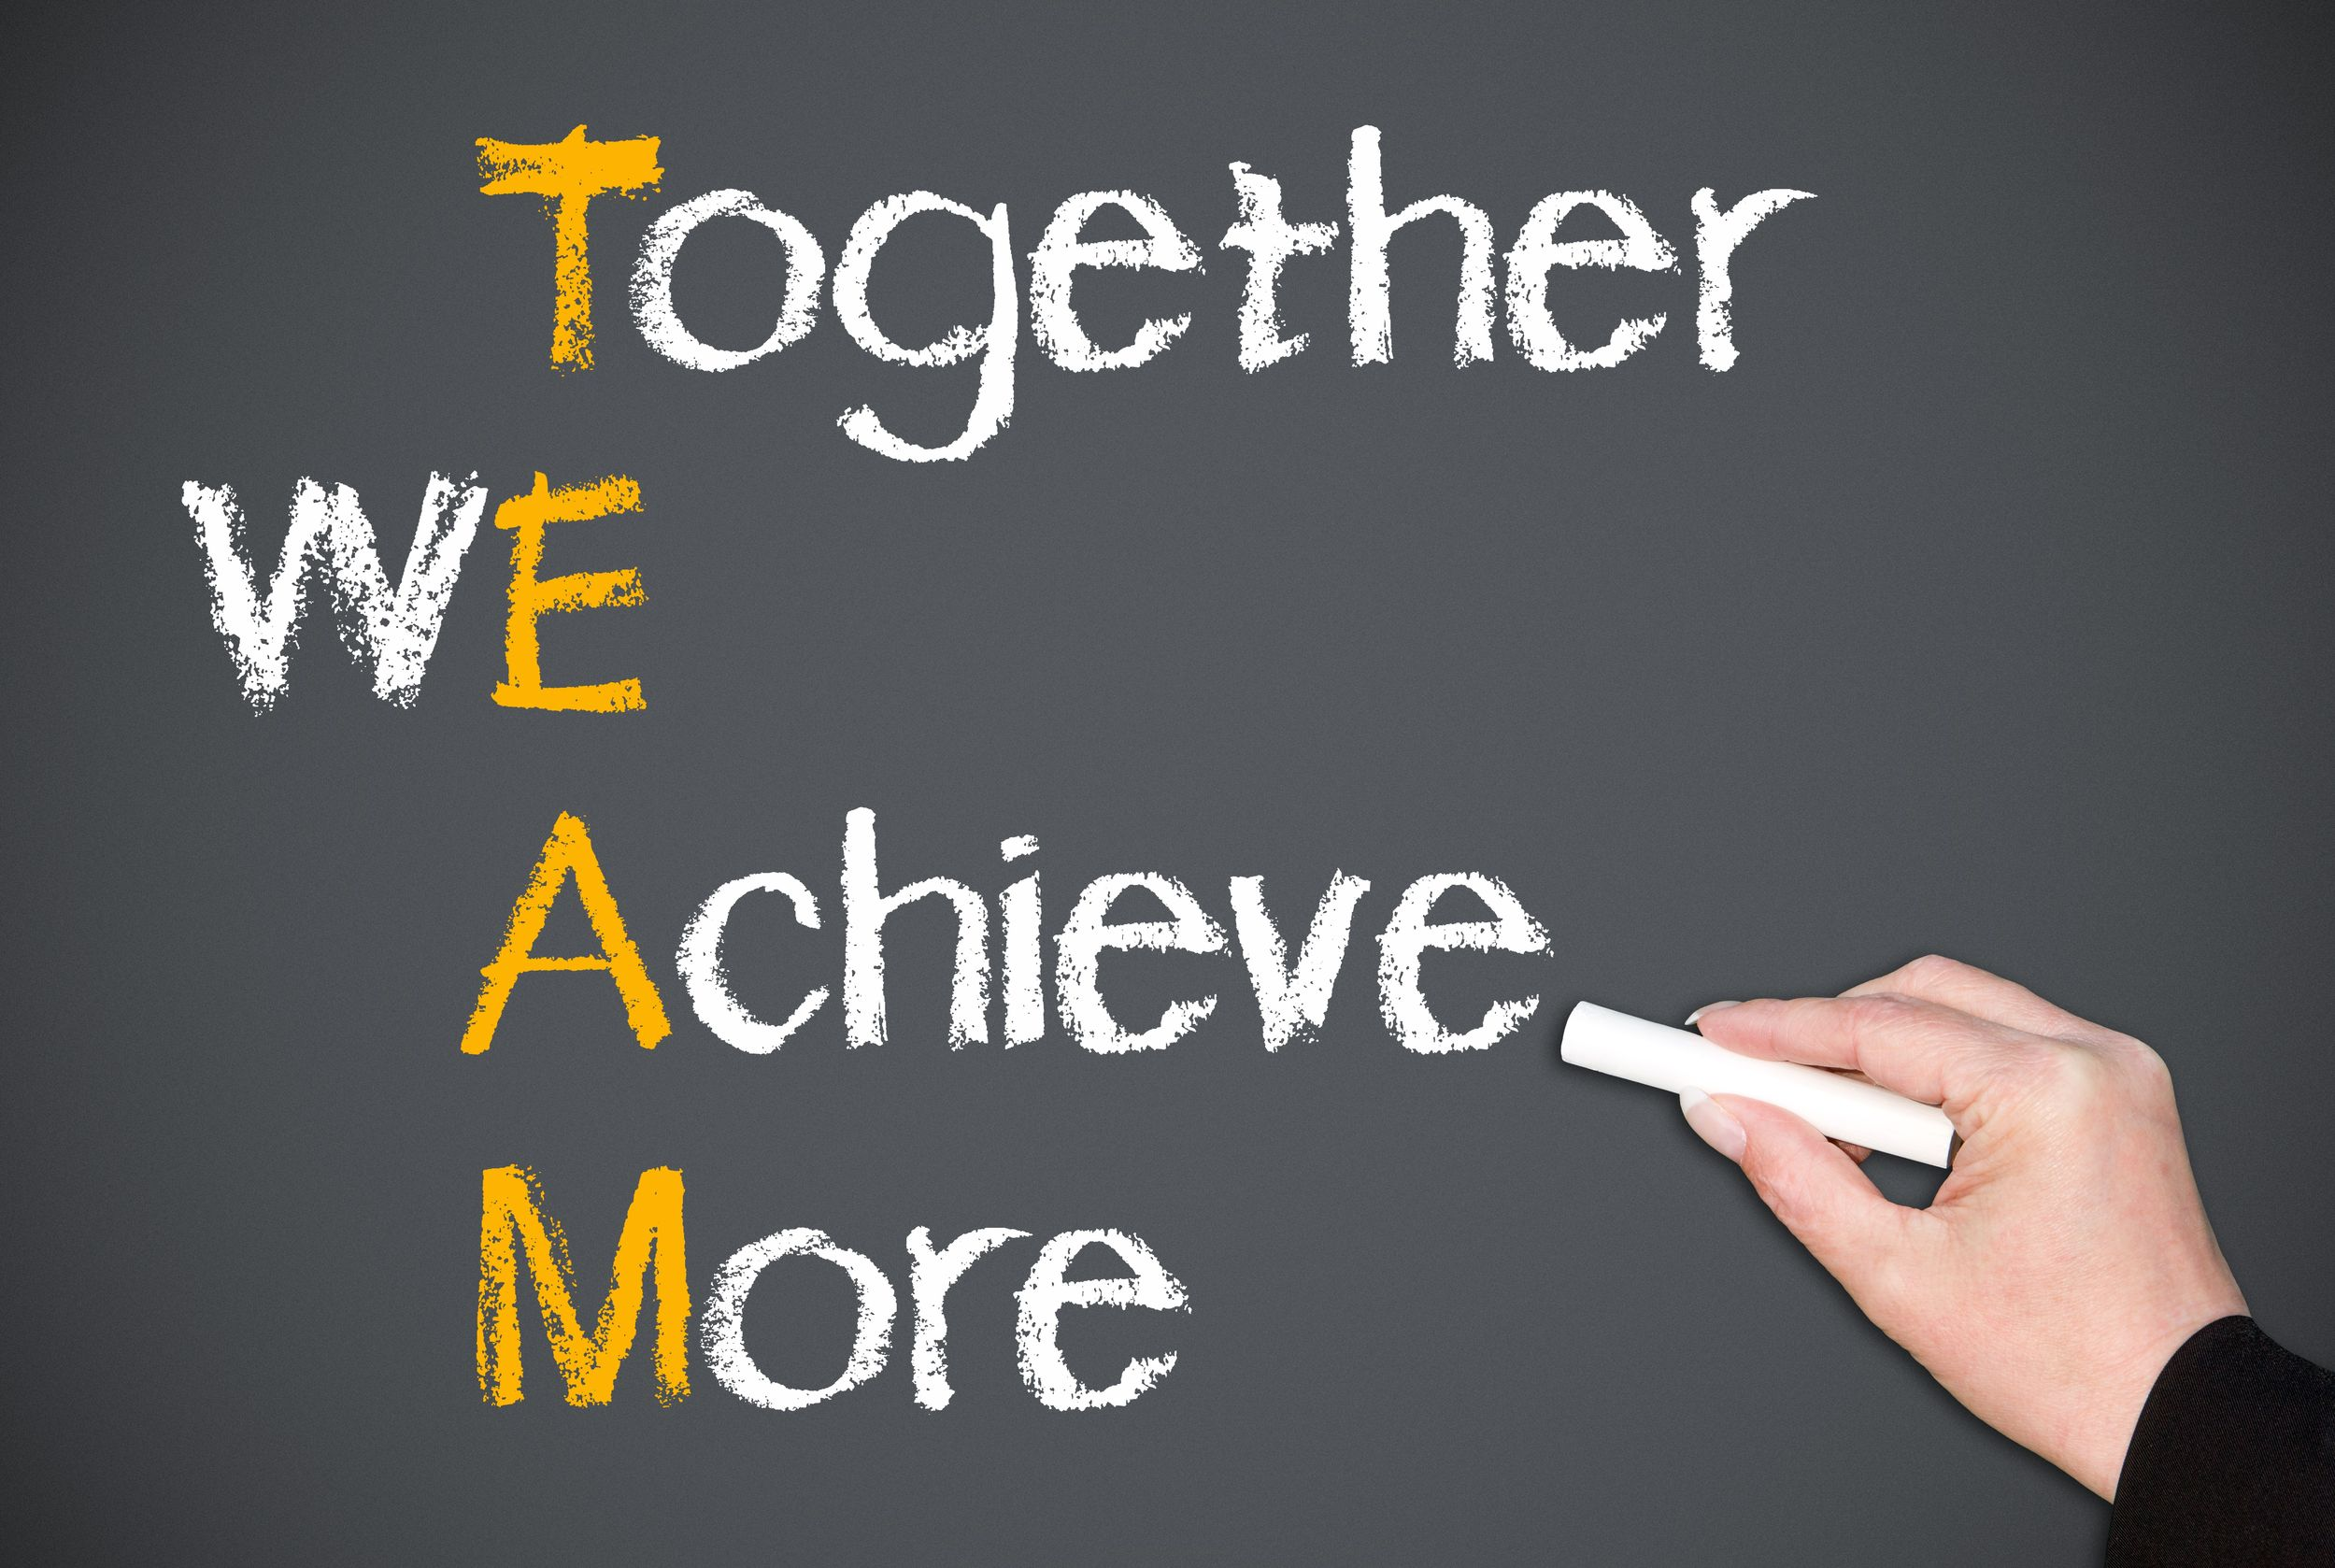 learning to appreciate team work Individual commitment to a group effort-that is what makes a team work, a company work, a society work, a civilization work robert crandall you put together the best.